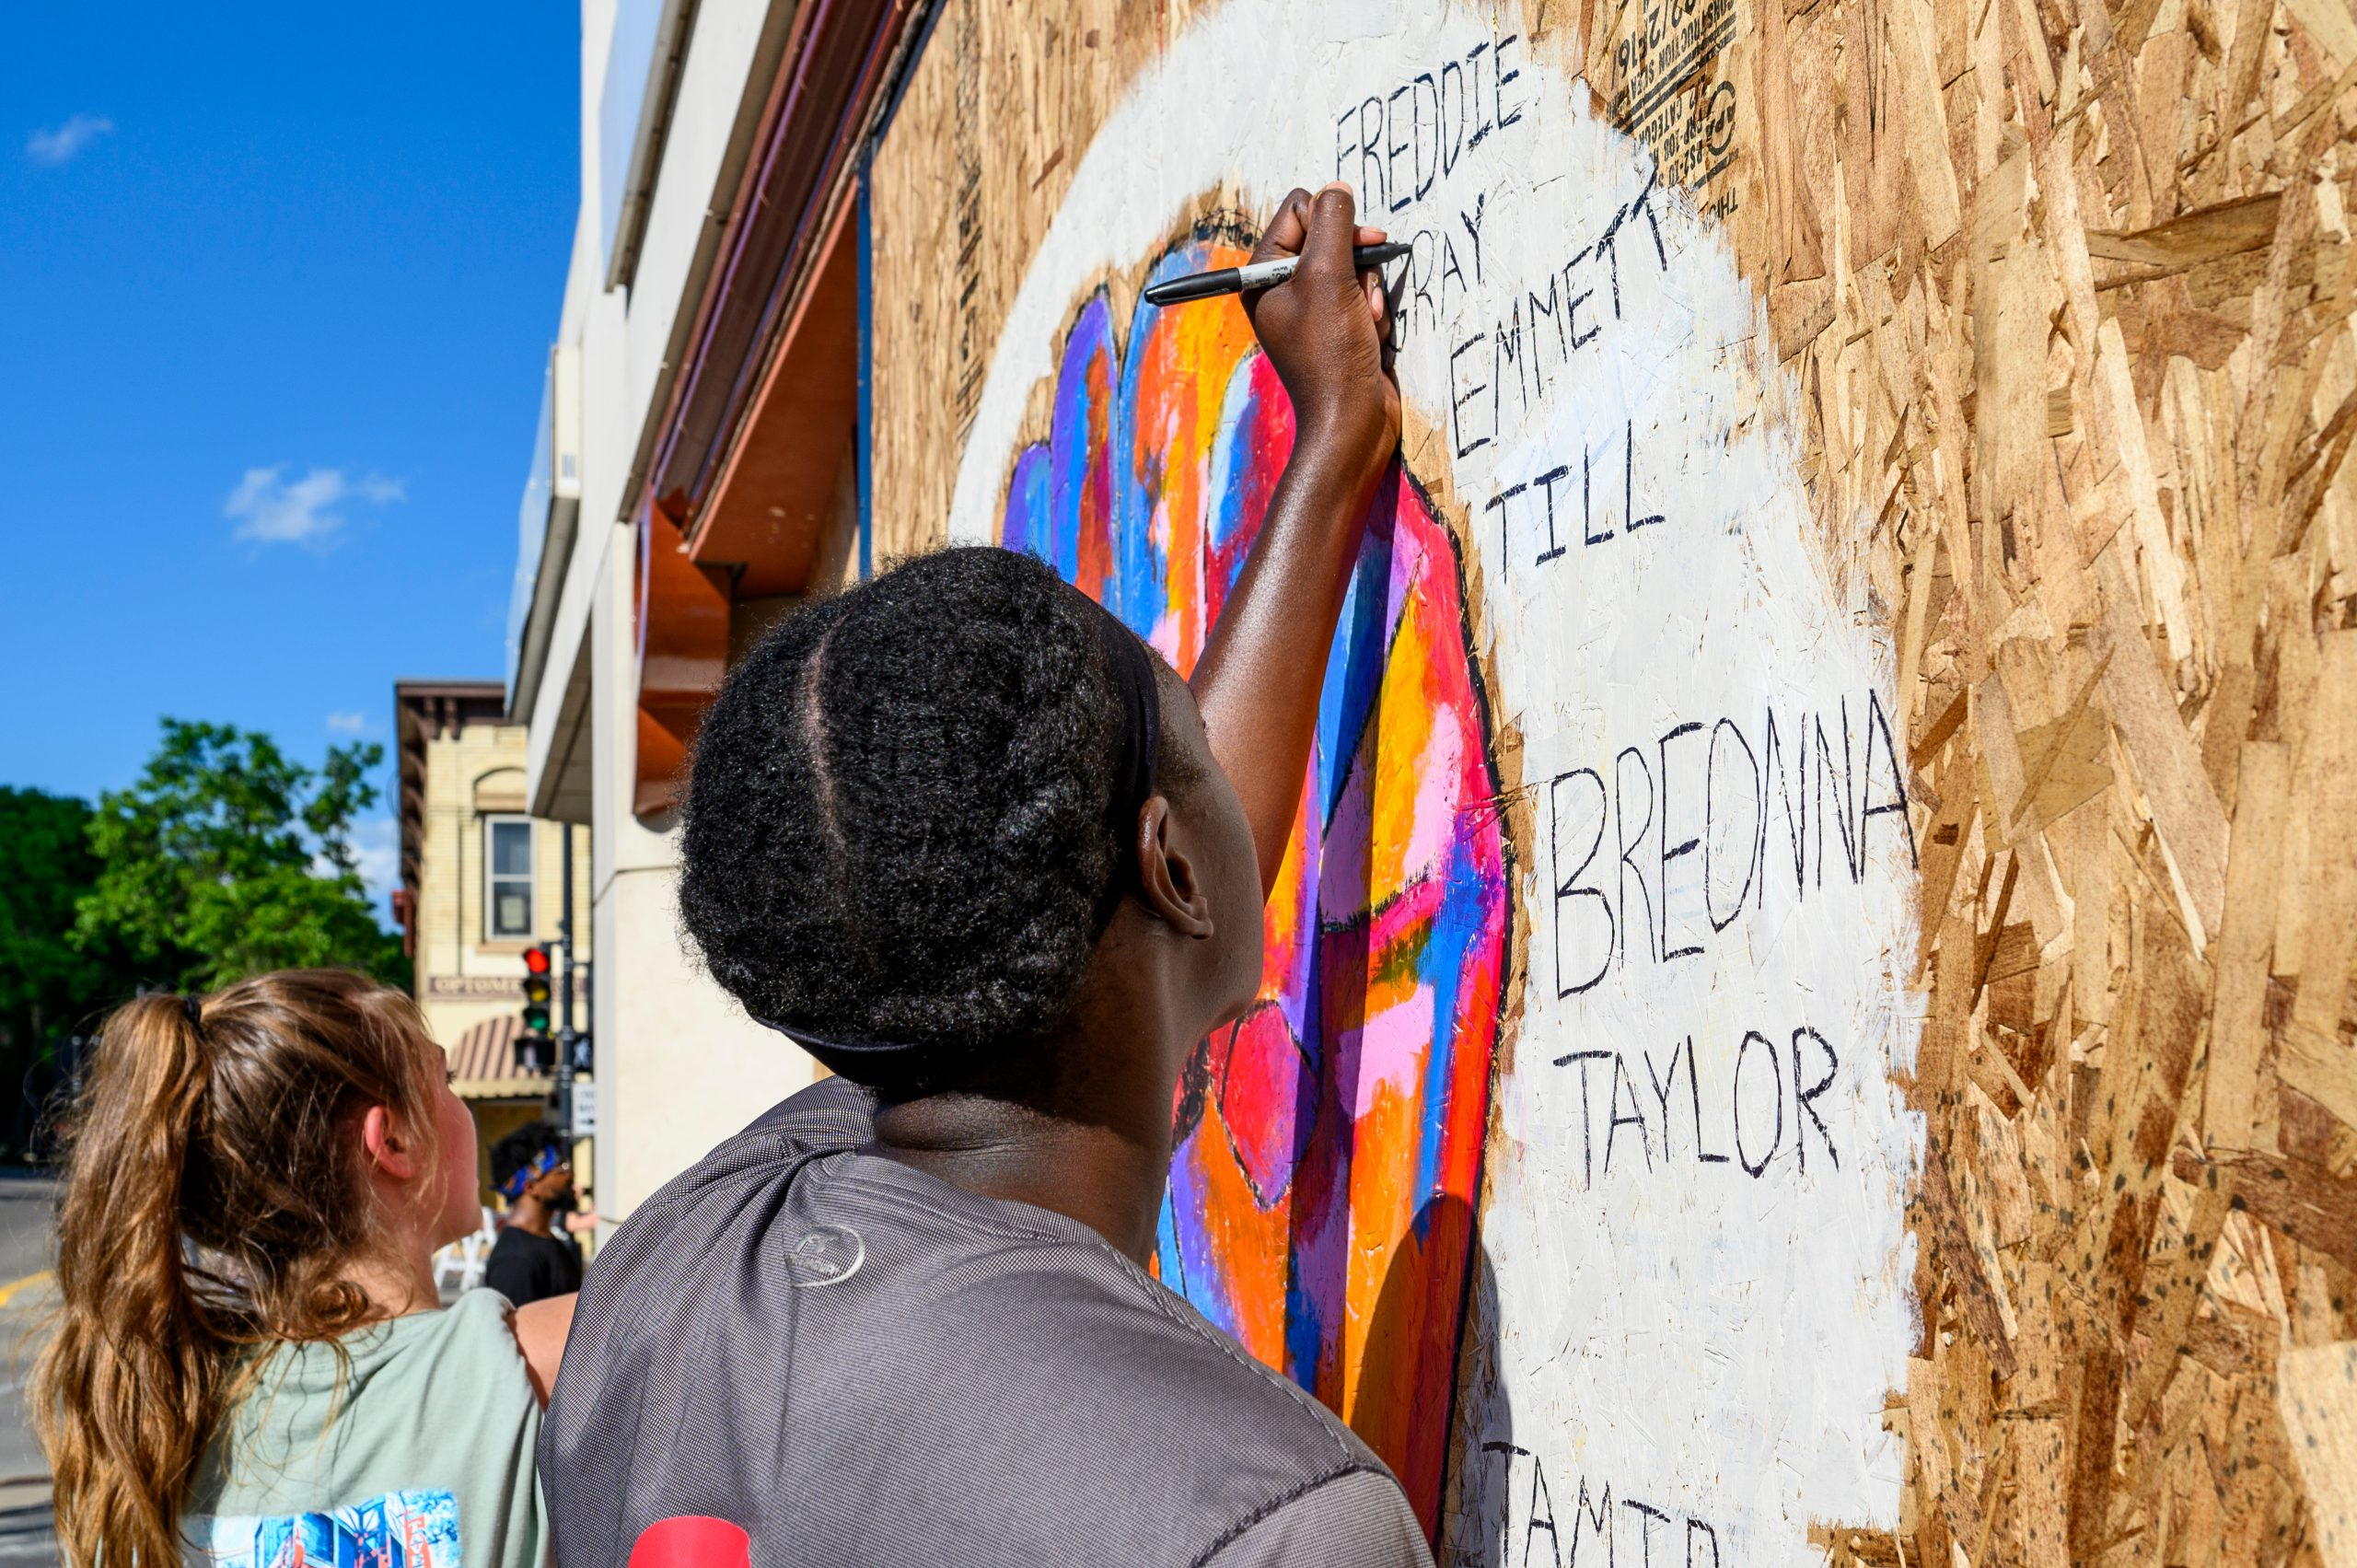 UW-Madison students (near to far) Courtney Gorum, Molly Pistono and Daniel Ledin work together to paint a mural commemorating the names of Black victims of police violence and racial injustice throughout the country on a boarded up window of the Community Pharmacy building on State Street in Madison, Wisconsin on June 5, 2020. The mural is one of many that have been painted on businesses and shops along the street following several nights of protests in response to the Minneapolis police killing of George Floyd, a black man, on May 25, 2020. (Photo by Bryce Richter / UW-Madiso